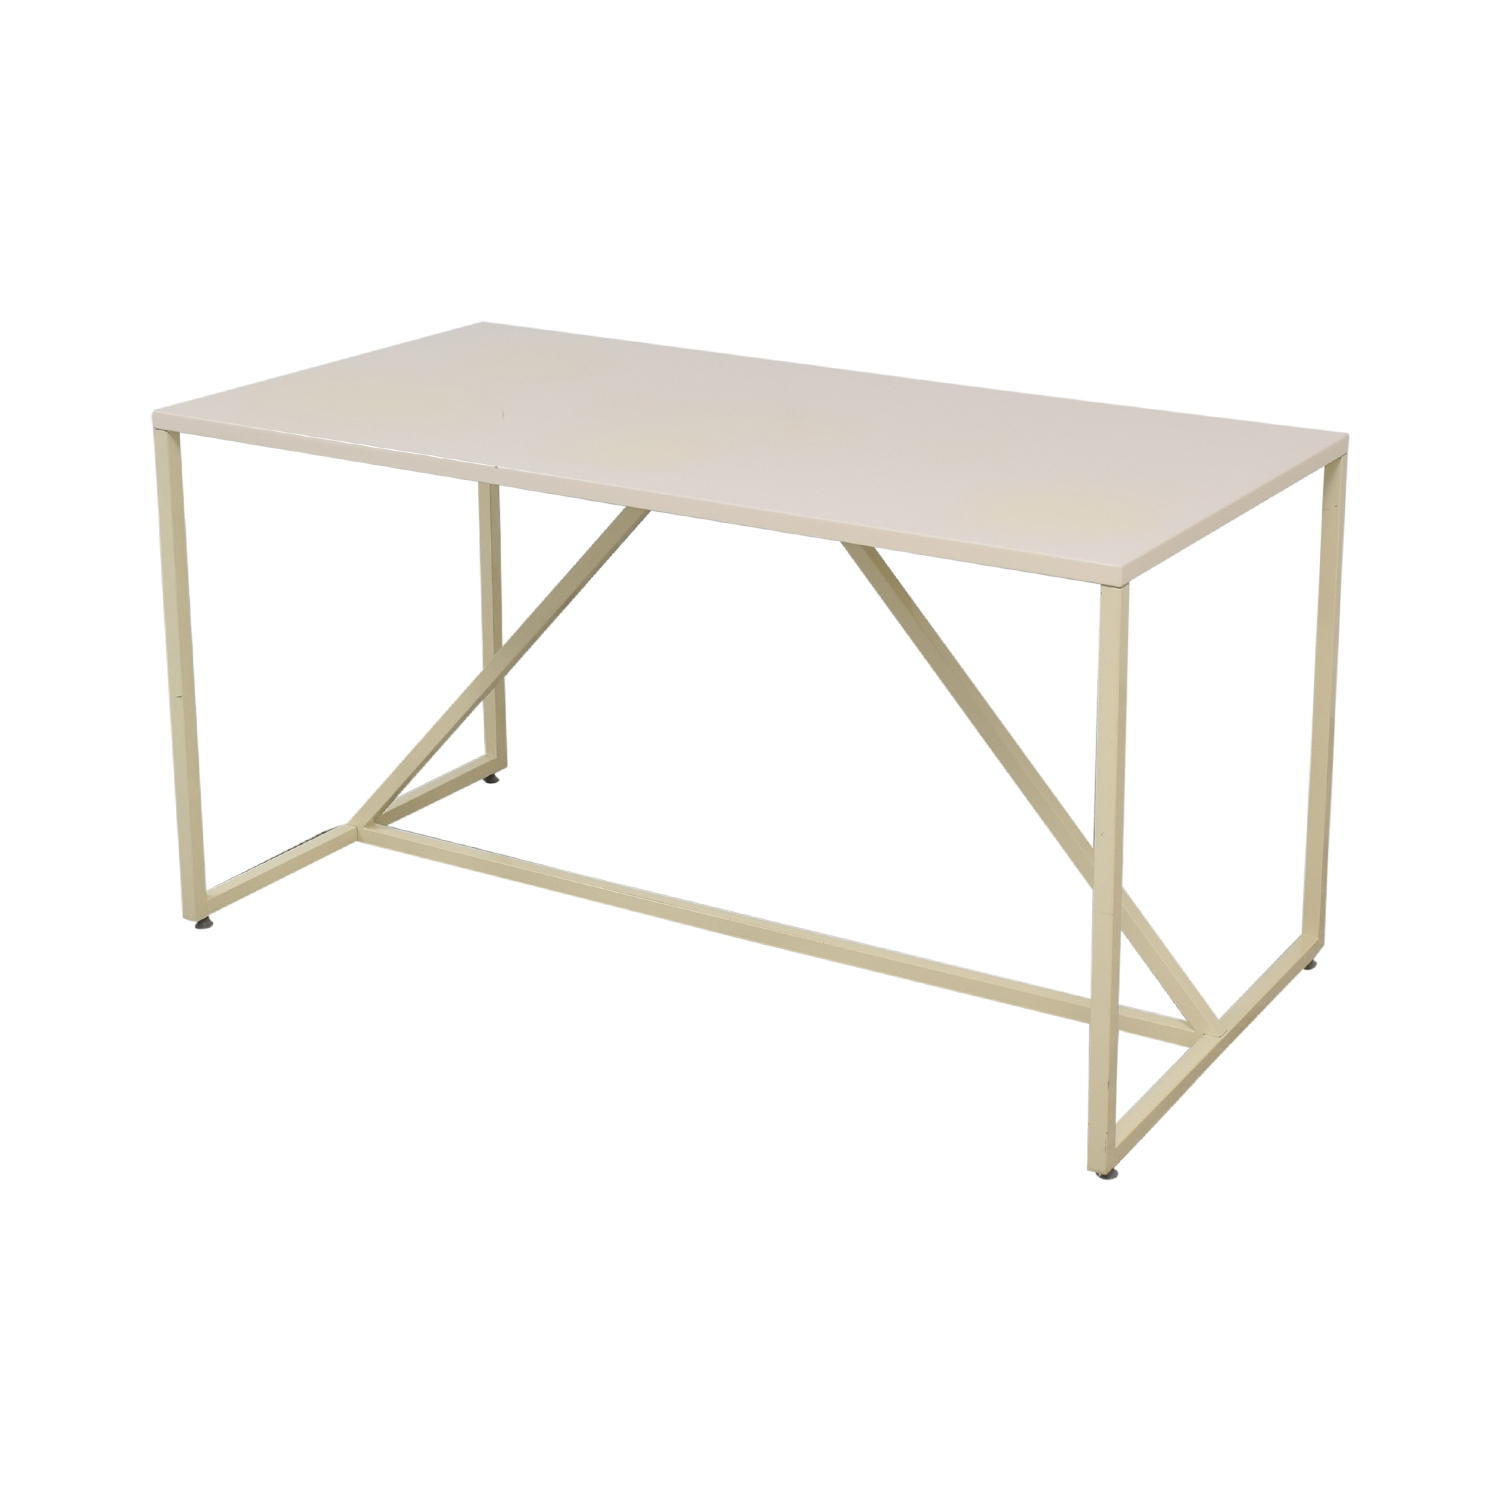 shop Blu Dot Blu Dot Strut Desk online